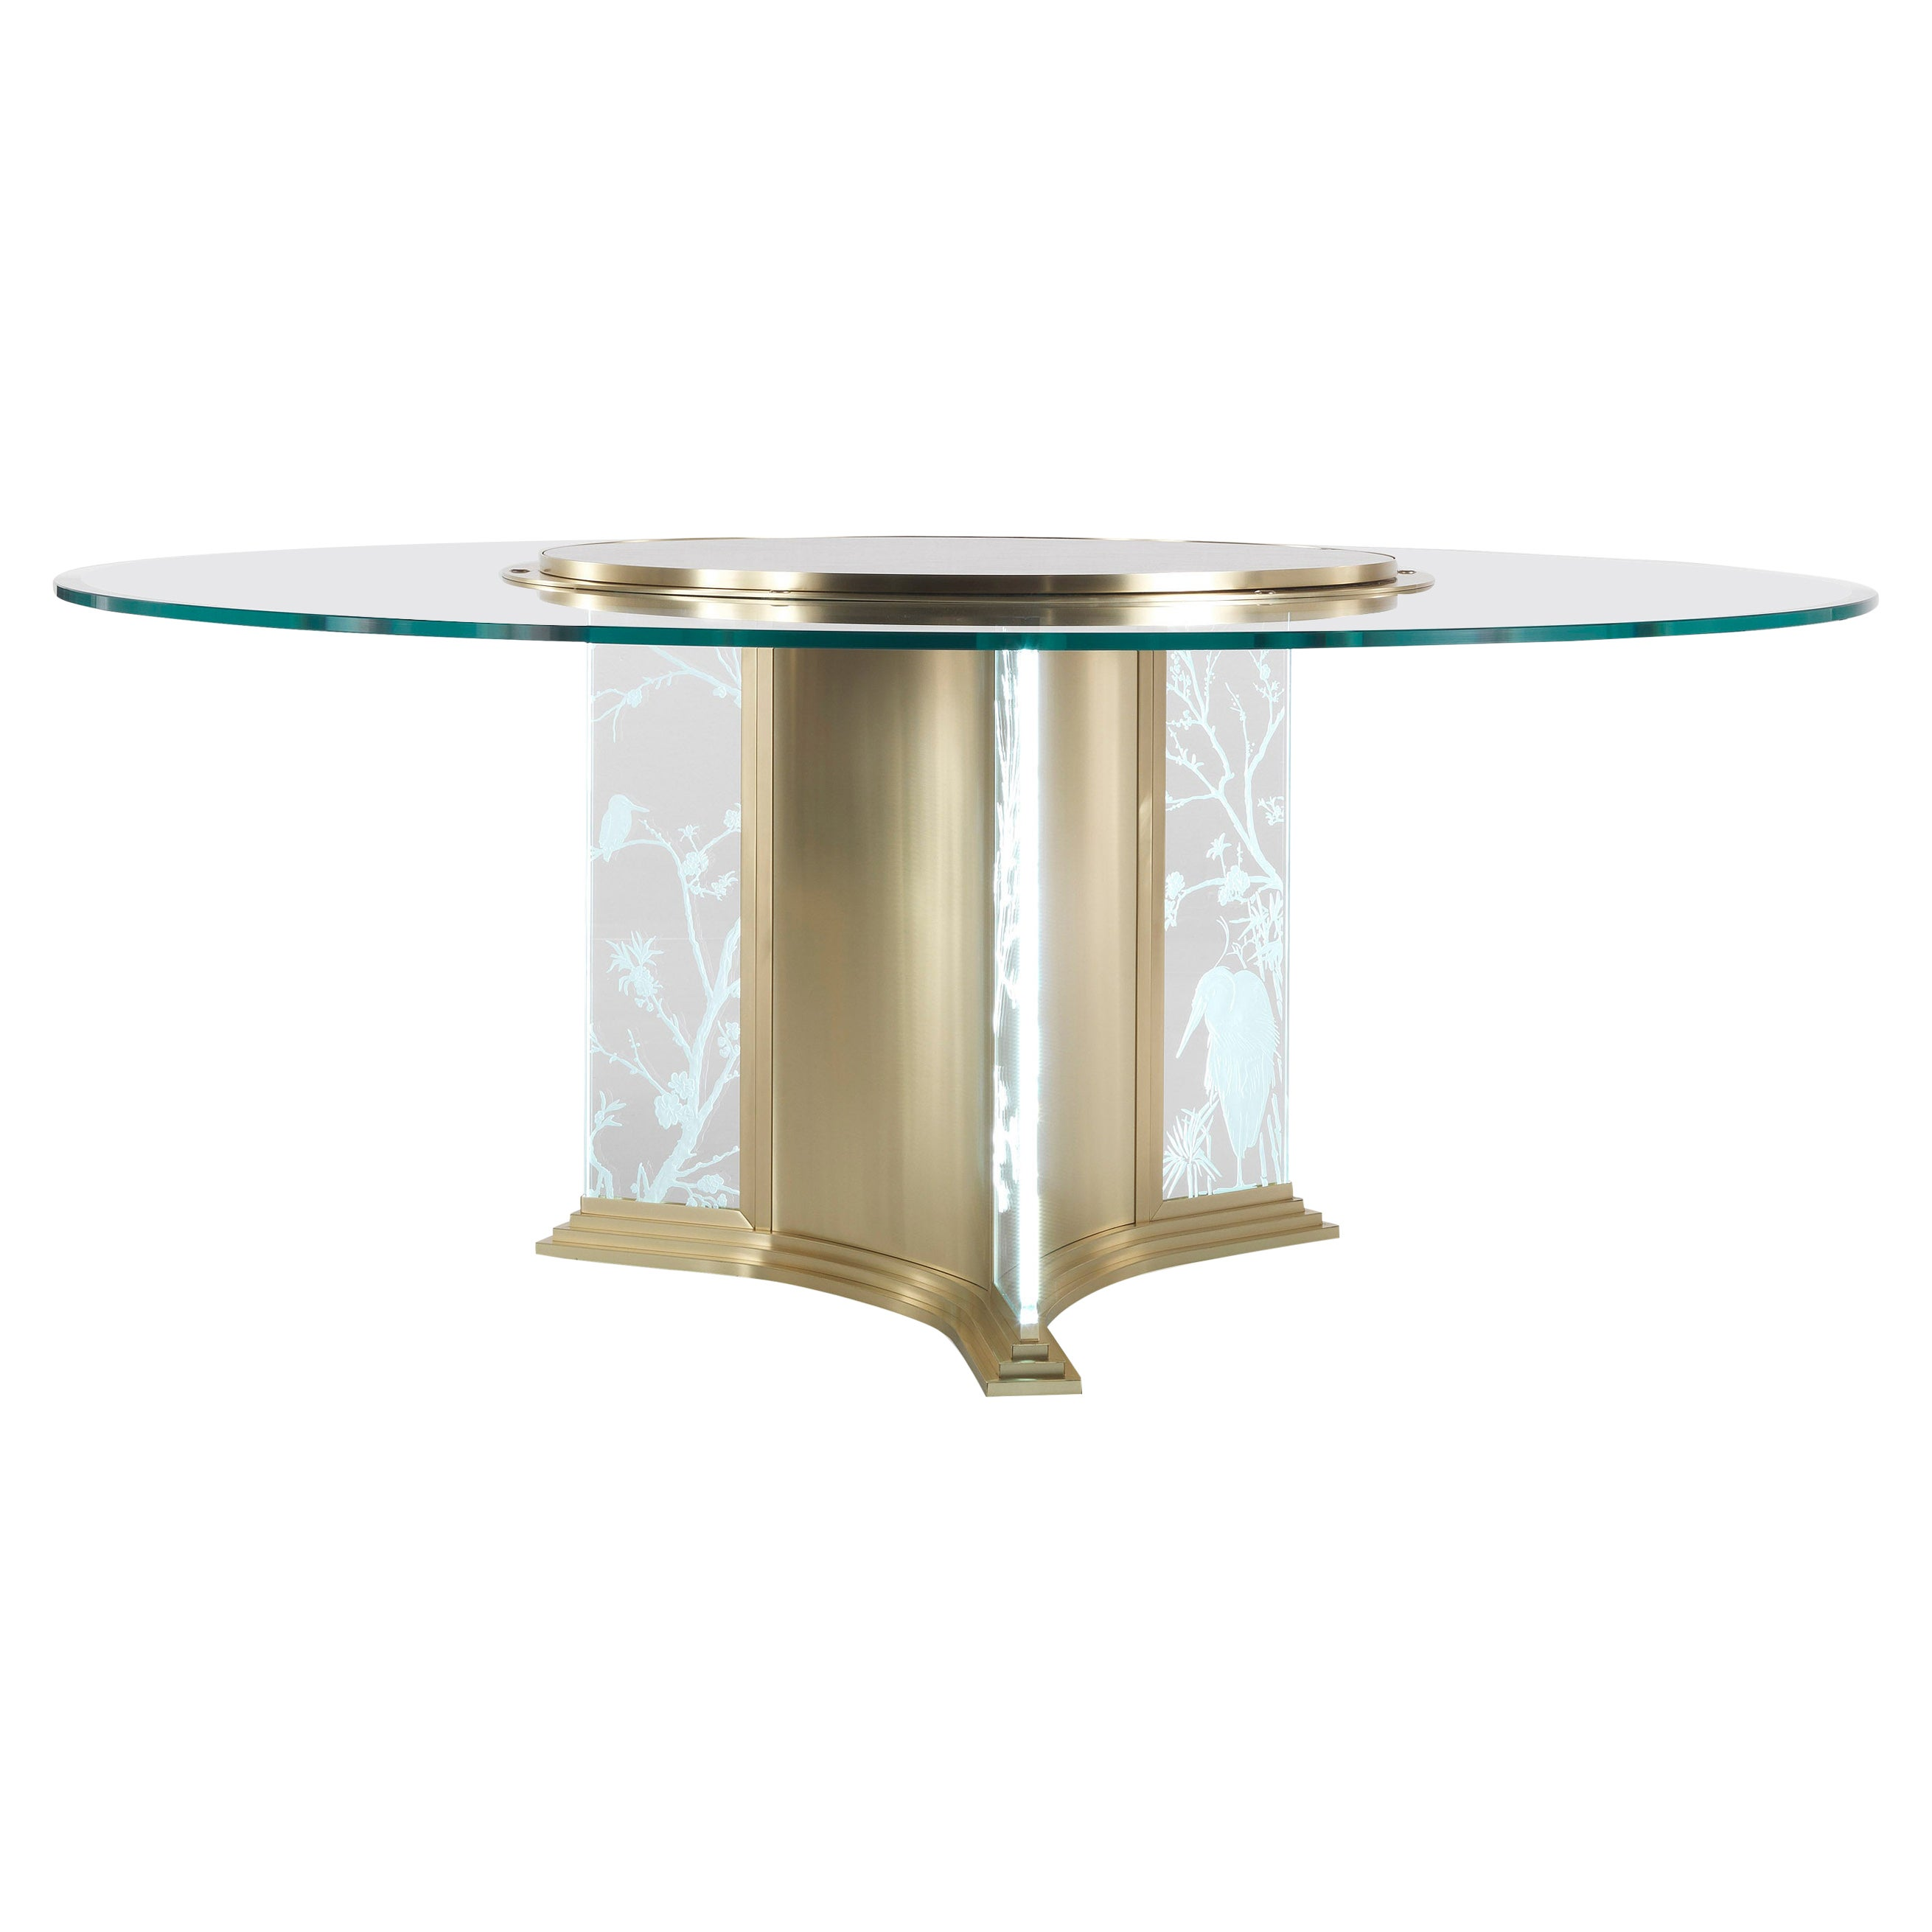 Jumbo Collection Fuji Round Dining Table in Brass and Glass with Onyx Top